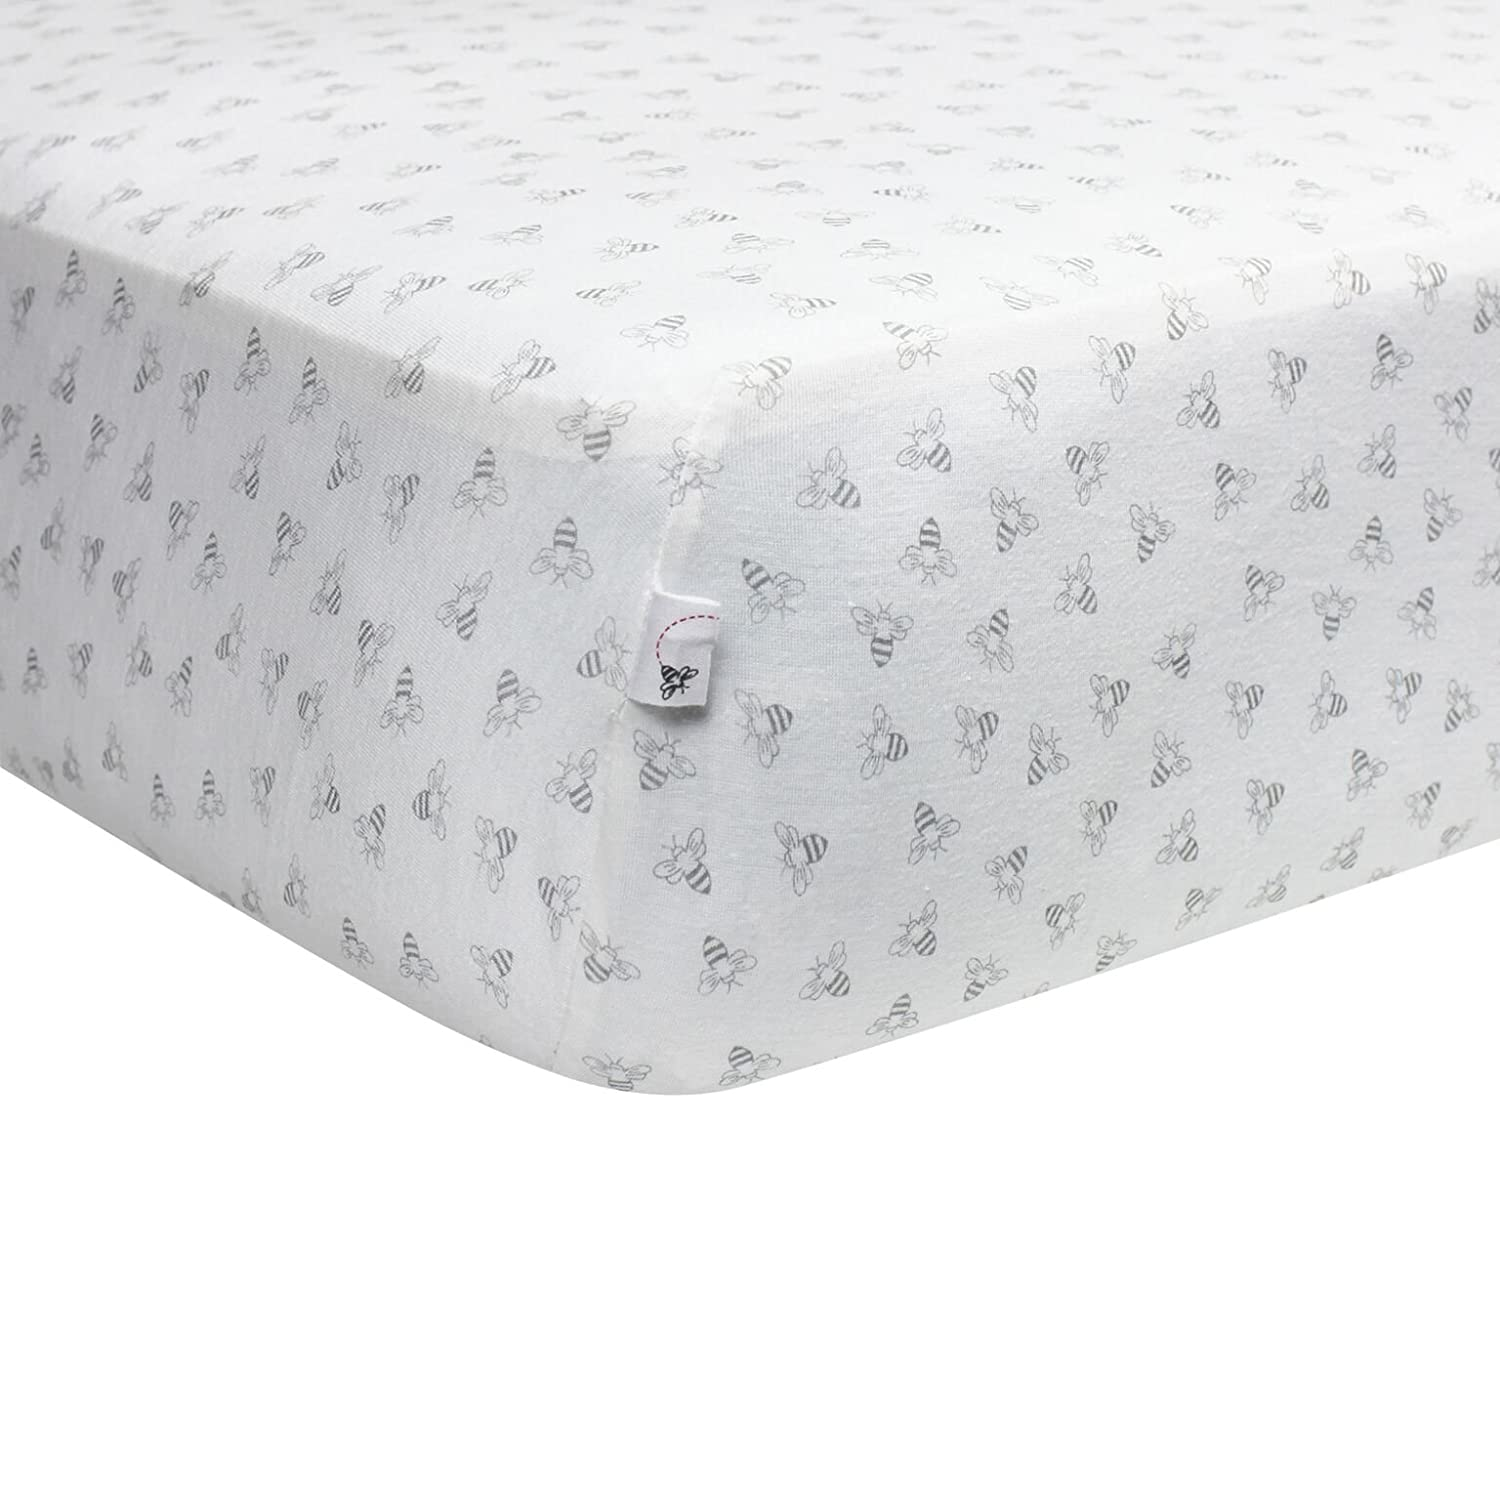 Blossom Butterfly Garden Fitted Crib Sheet Girls /& Unisex 100/% Organic Cotton Crib Sheet for Standard Crib and Toddler Mattresses Burts Bees Baby